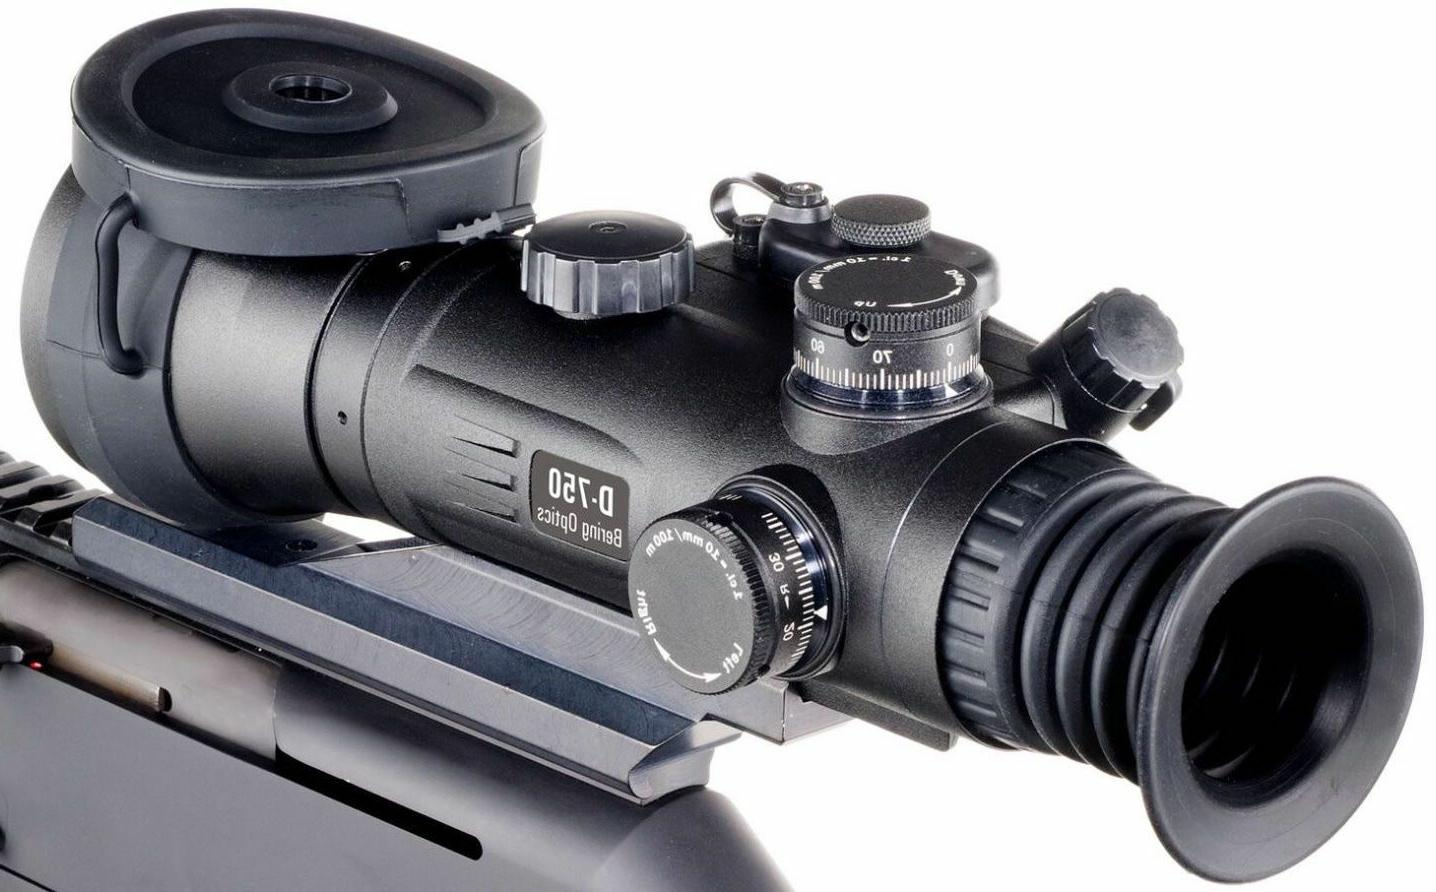 Bering Optics D-750UW 4.0x66 Gen 3+ L3 Elite B&W Tube Night